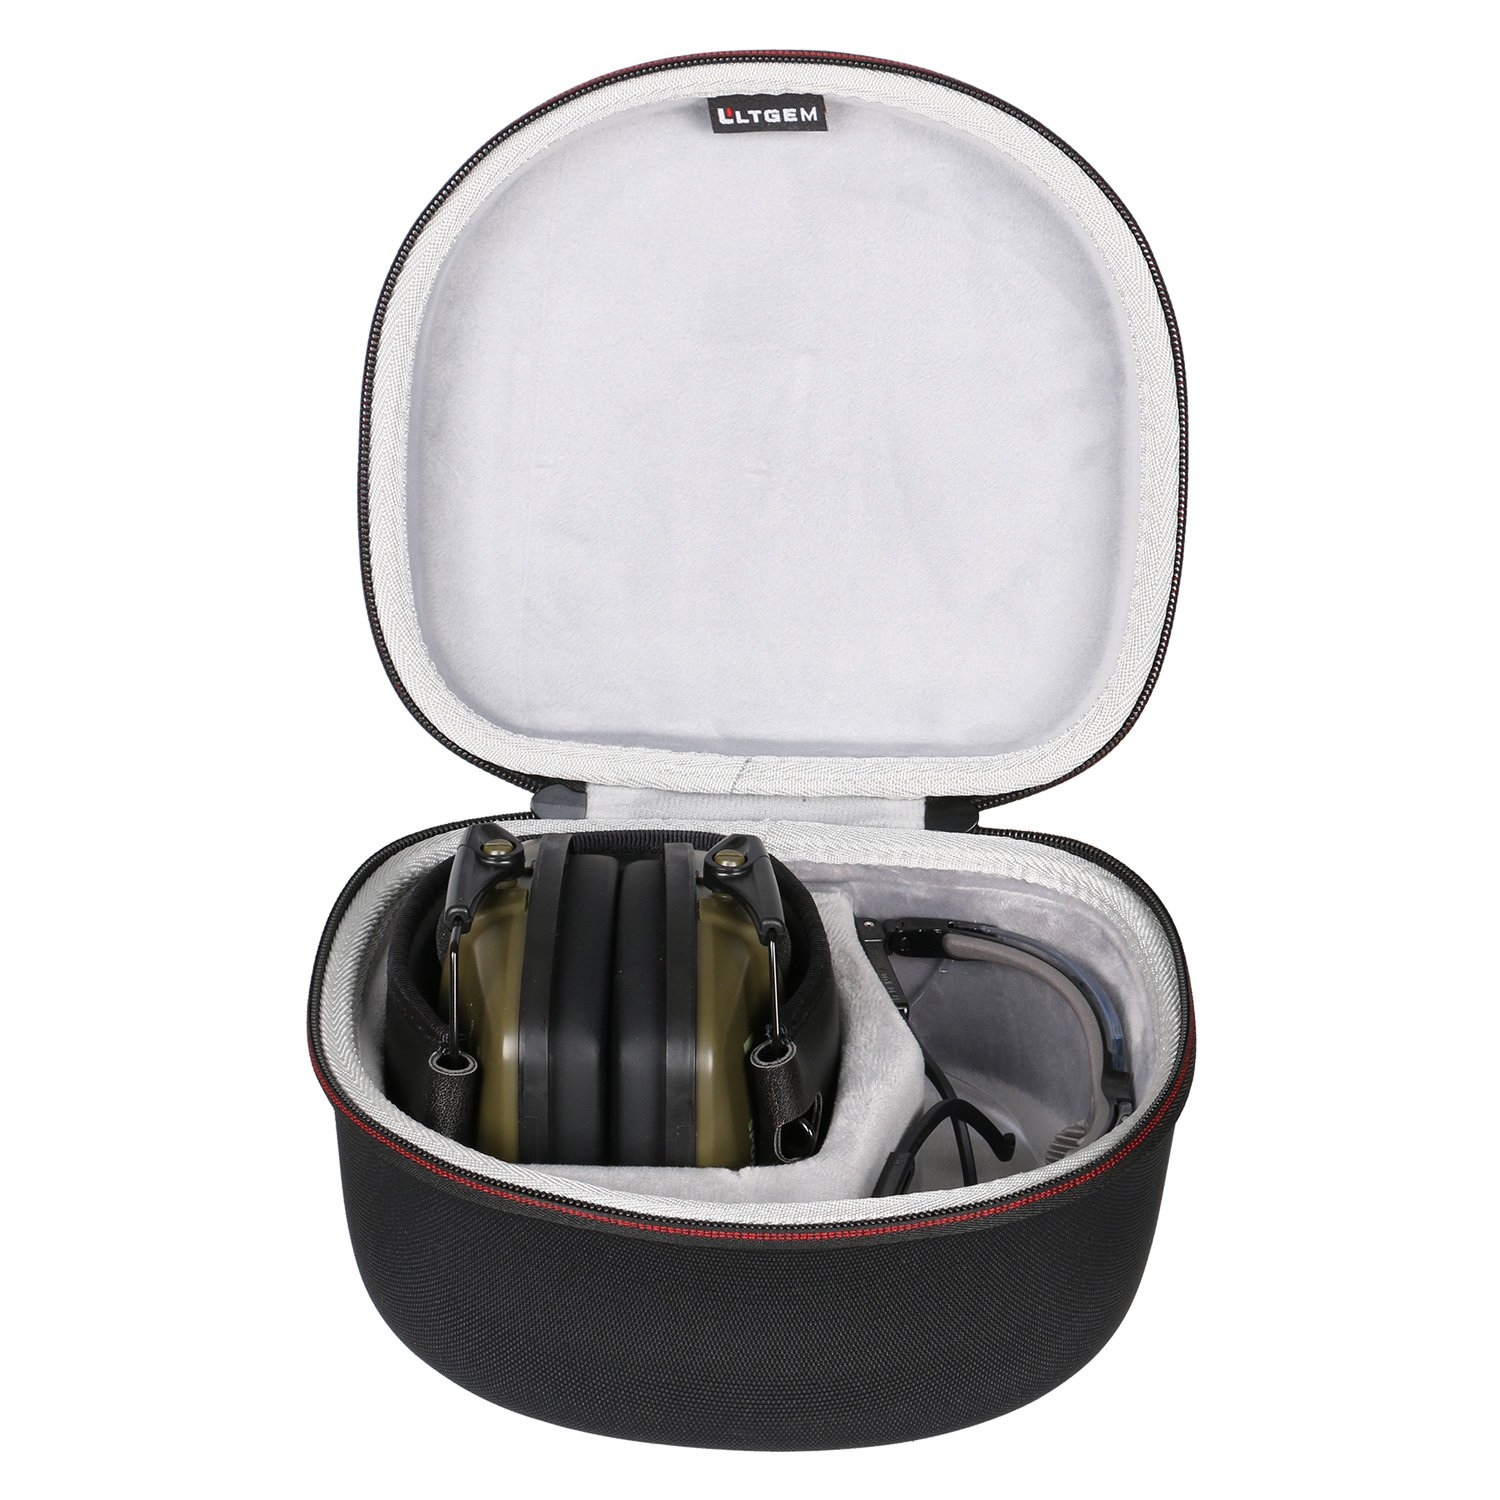 LTGEM Case for both Howard Leight by Honeywell Impact Sport Earmuff and Genesis Sharp-Shooter Safety Eyewear Glasses (R-03570) - Black